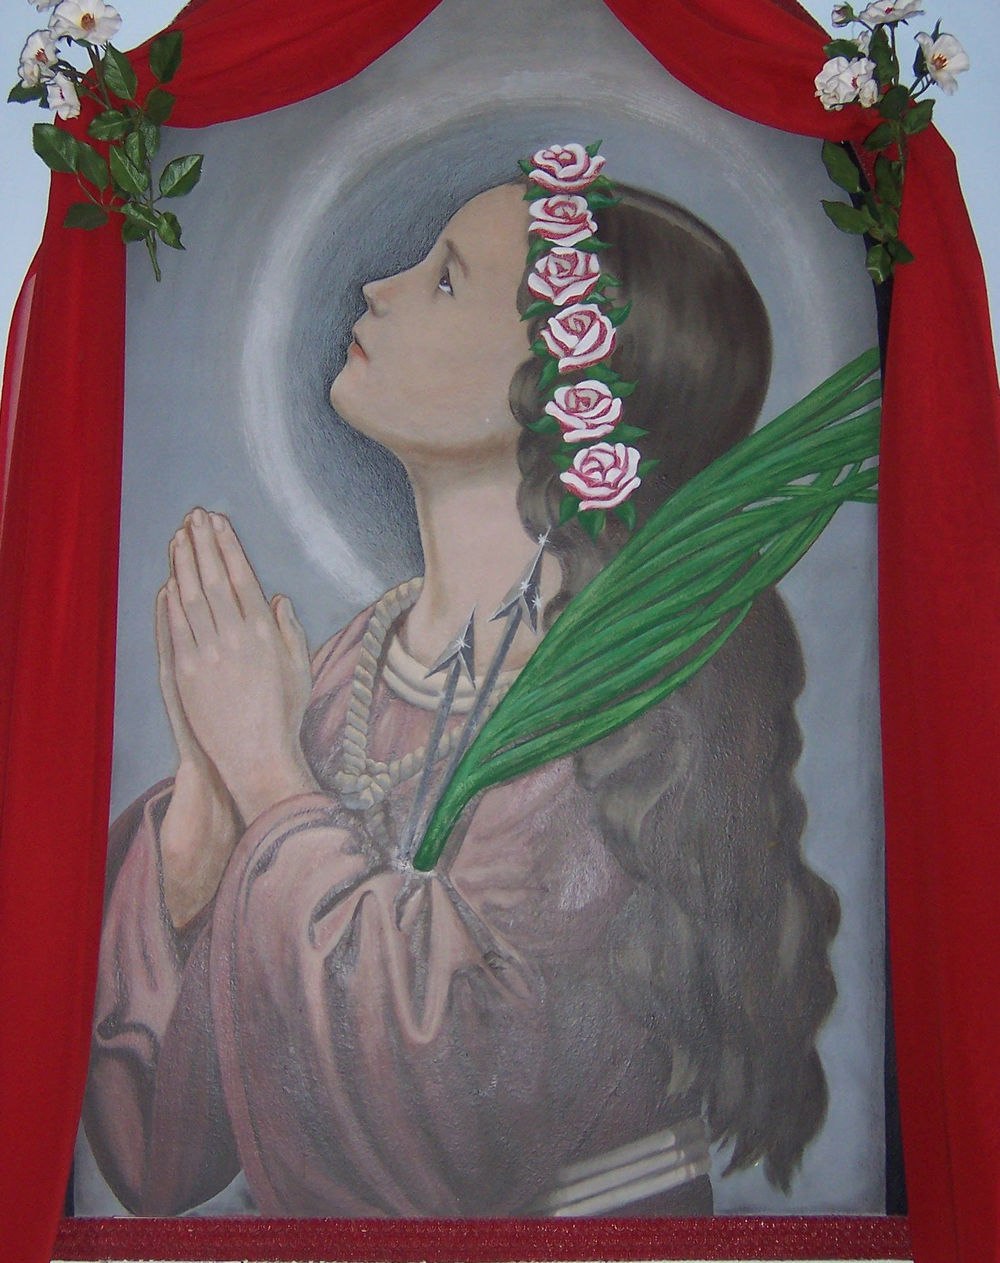 Our Lady of the Rosary Chapel, Monroe, Connecticut, United States.  Saint Philomena Painting Inside Chapel.